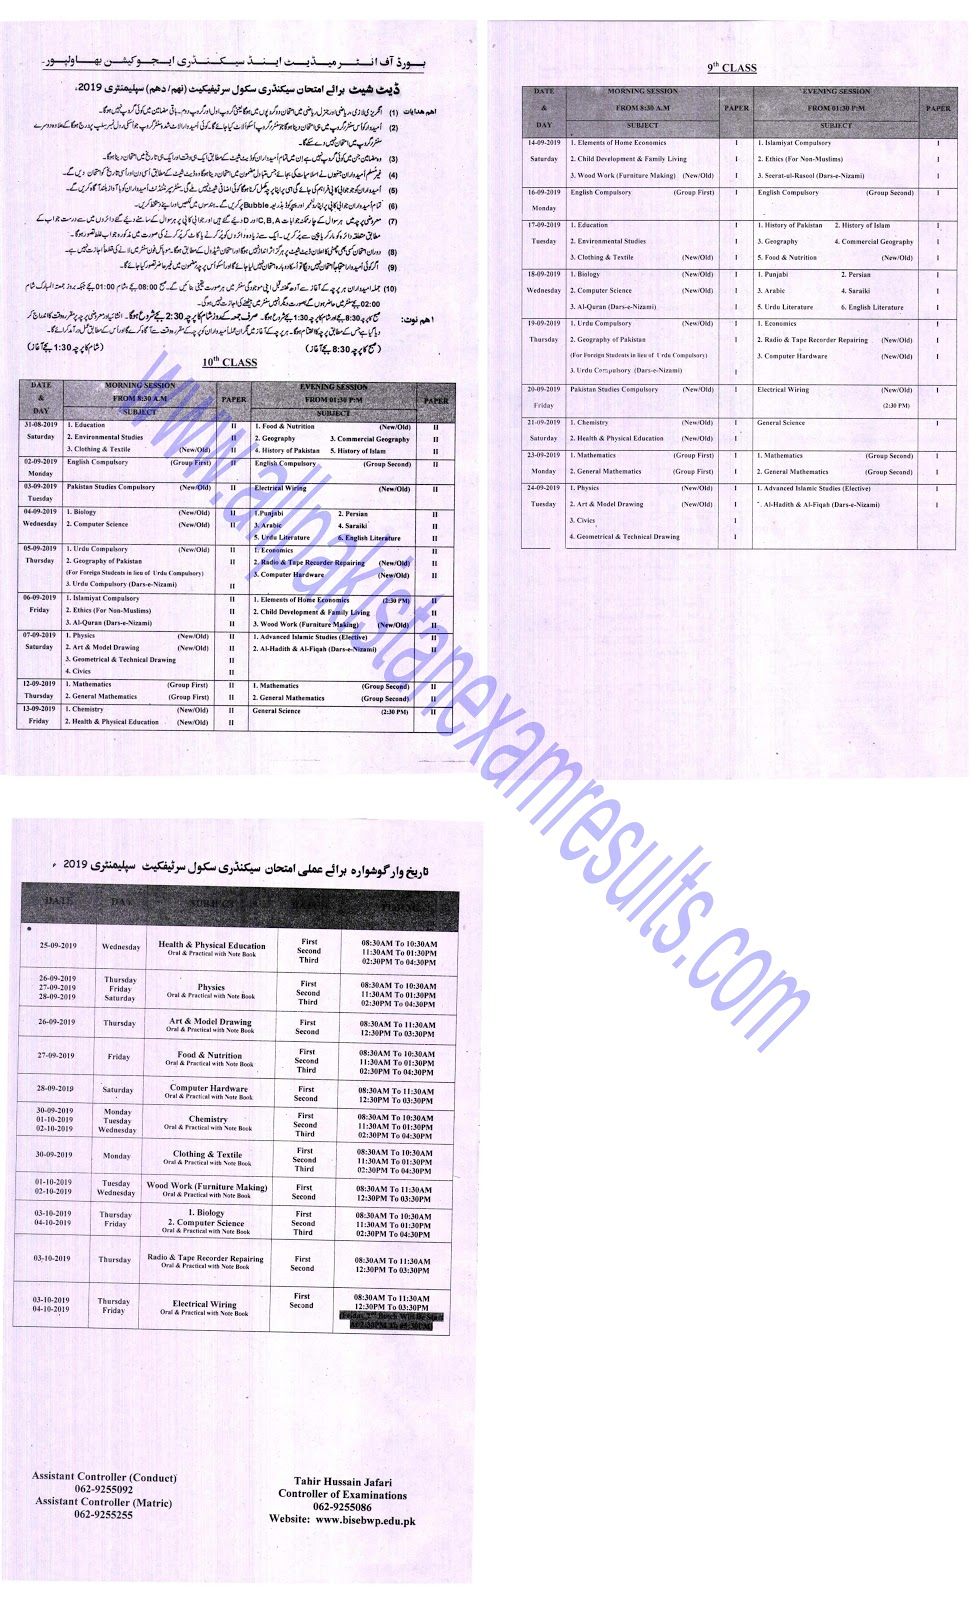 Date Sheet For SSC Supplementary Bahawalpur Board 2019